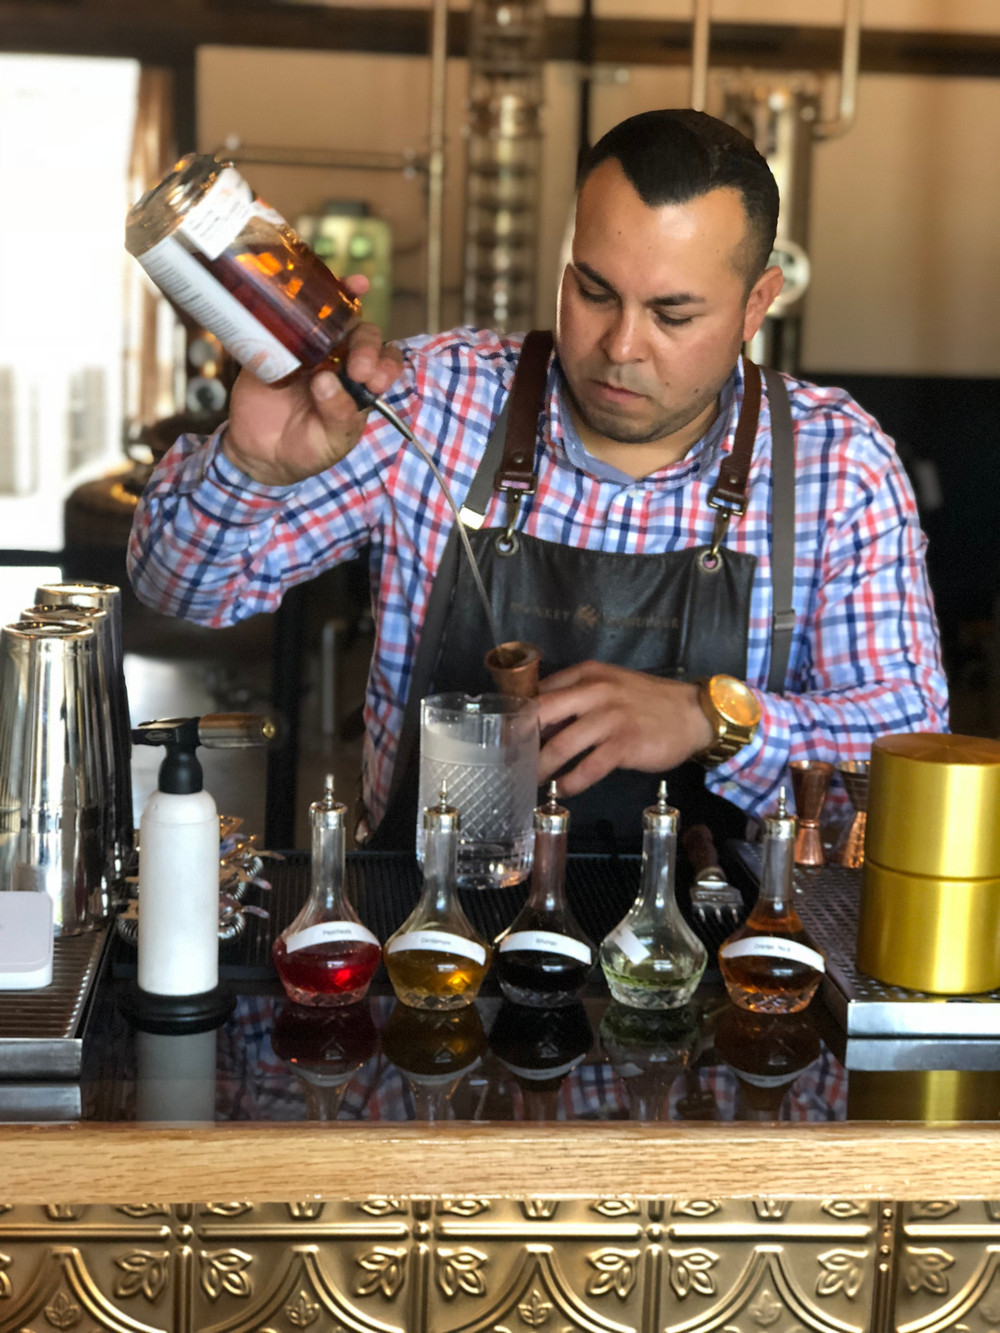 Mixologist, Leo Montesinos, joins Surf City Still Works